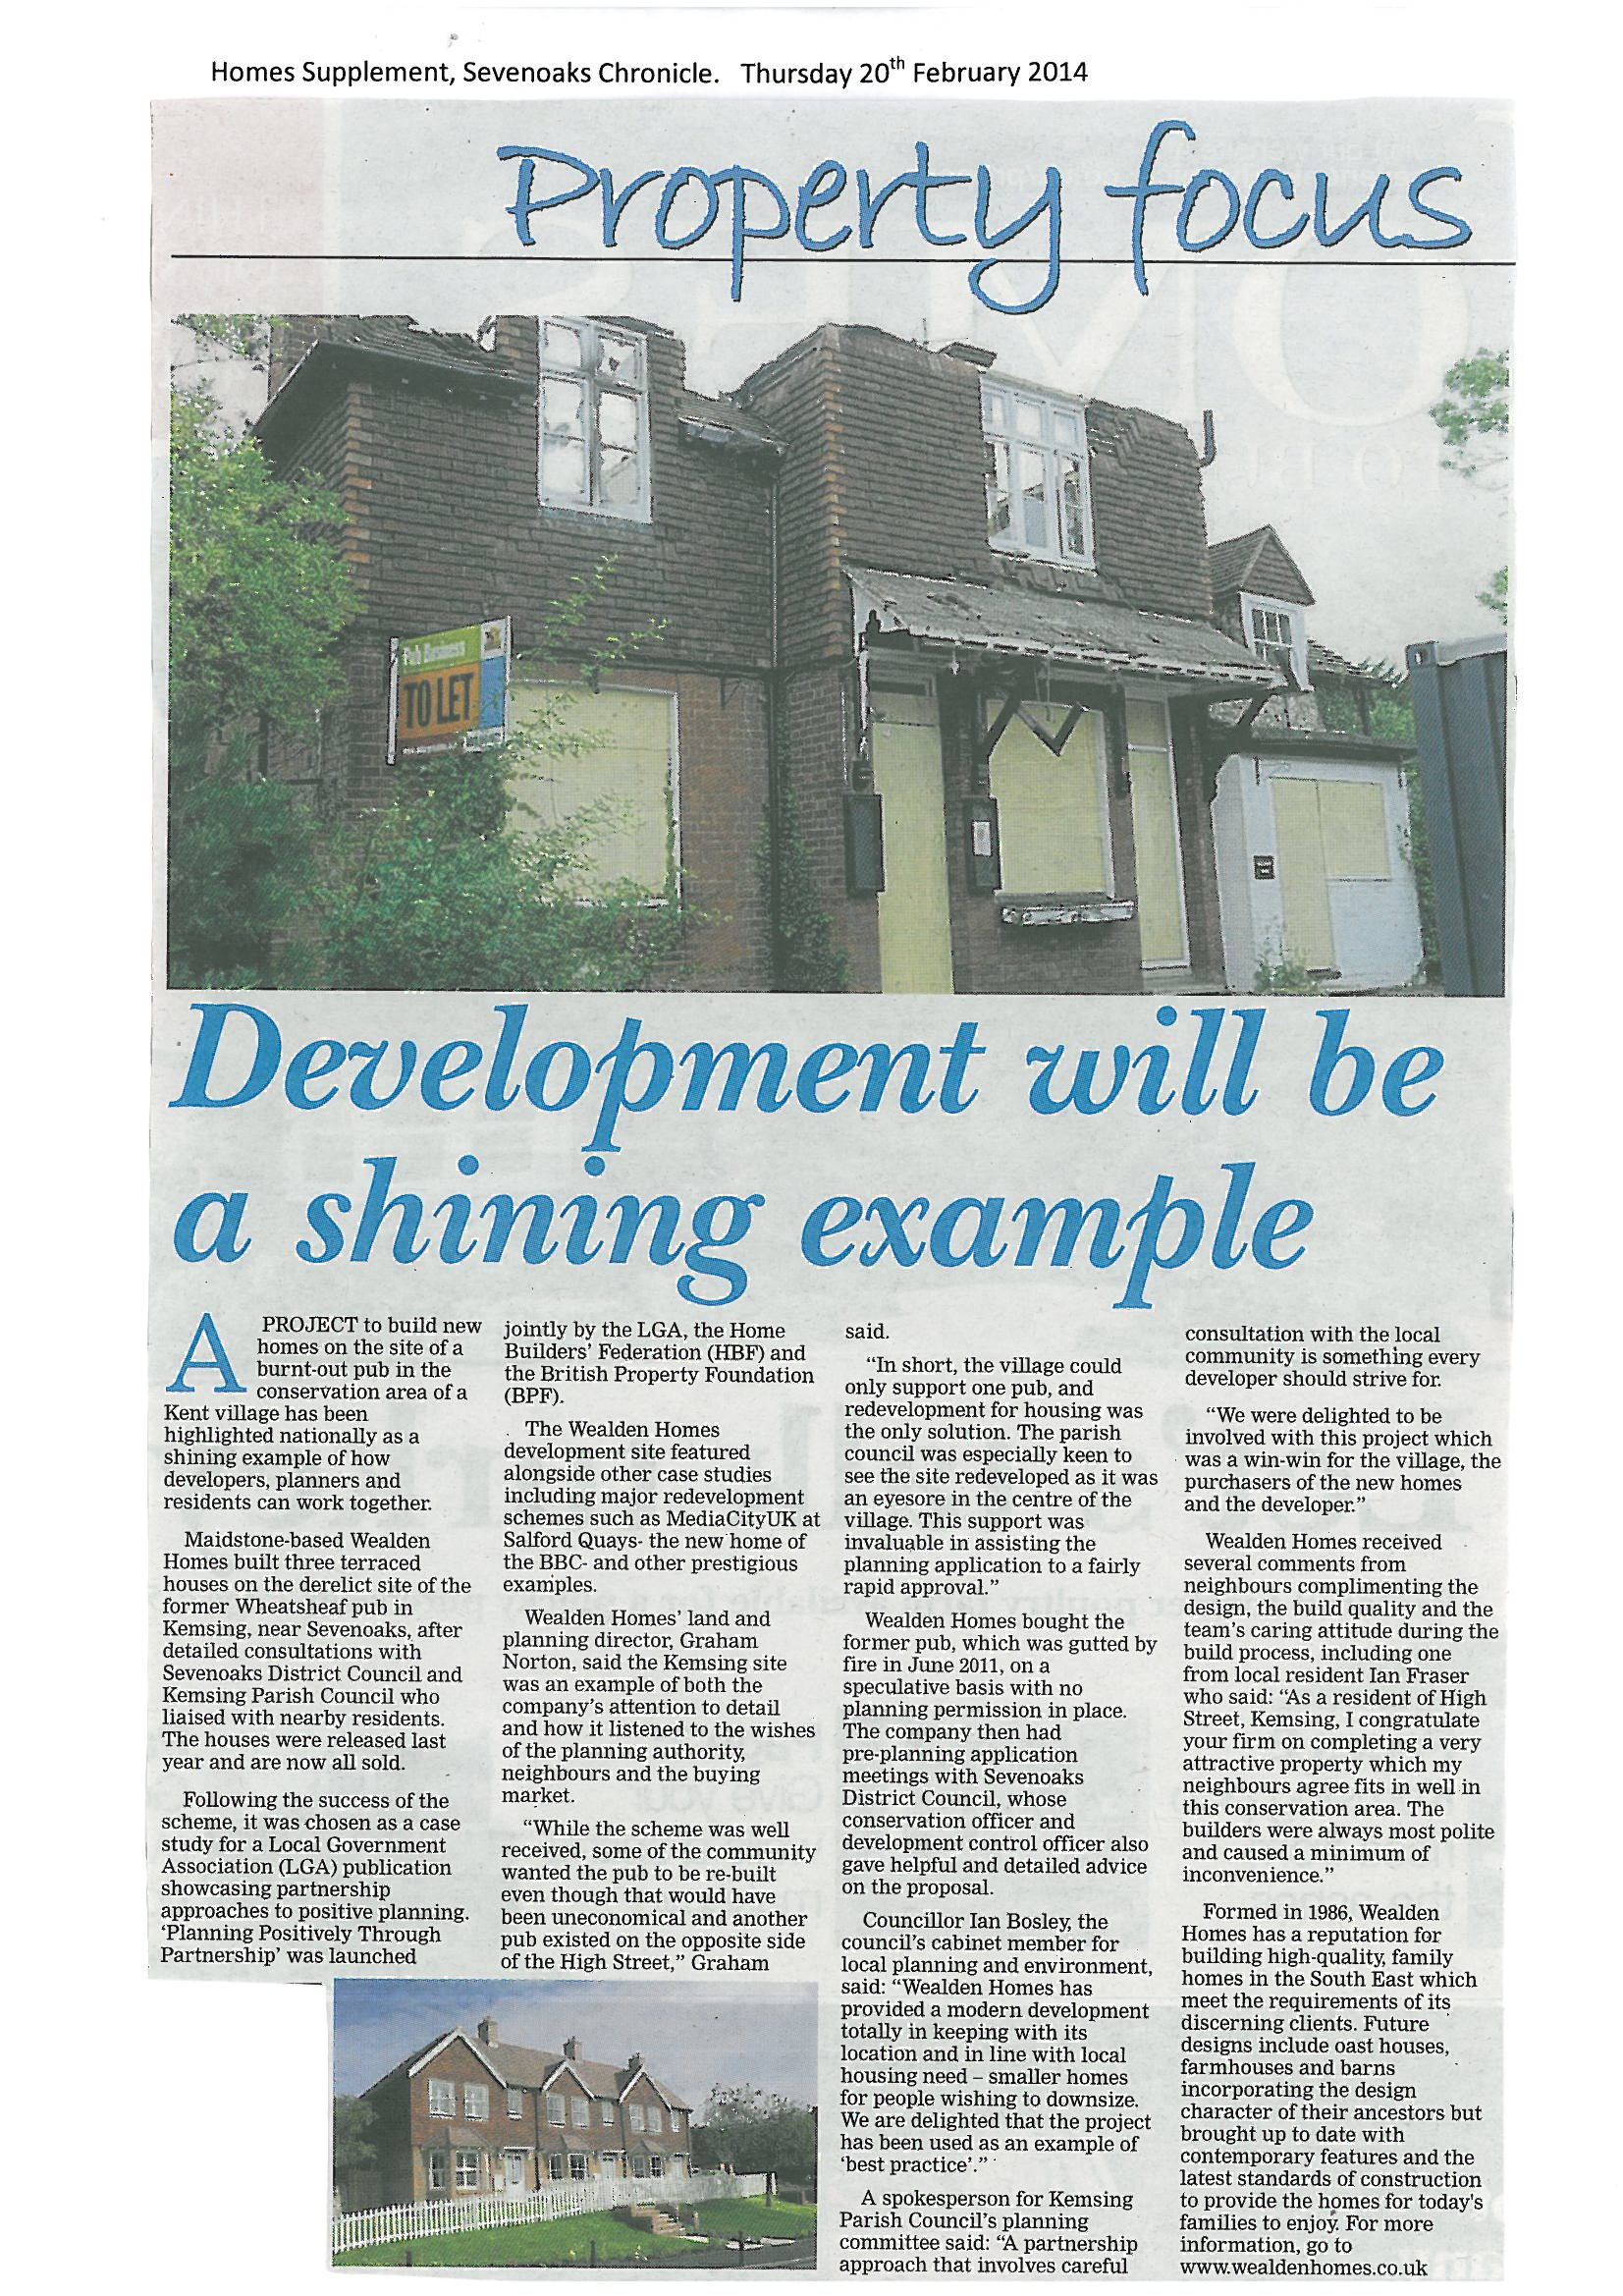 Sevenoaks Chronicle Feb 2014